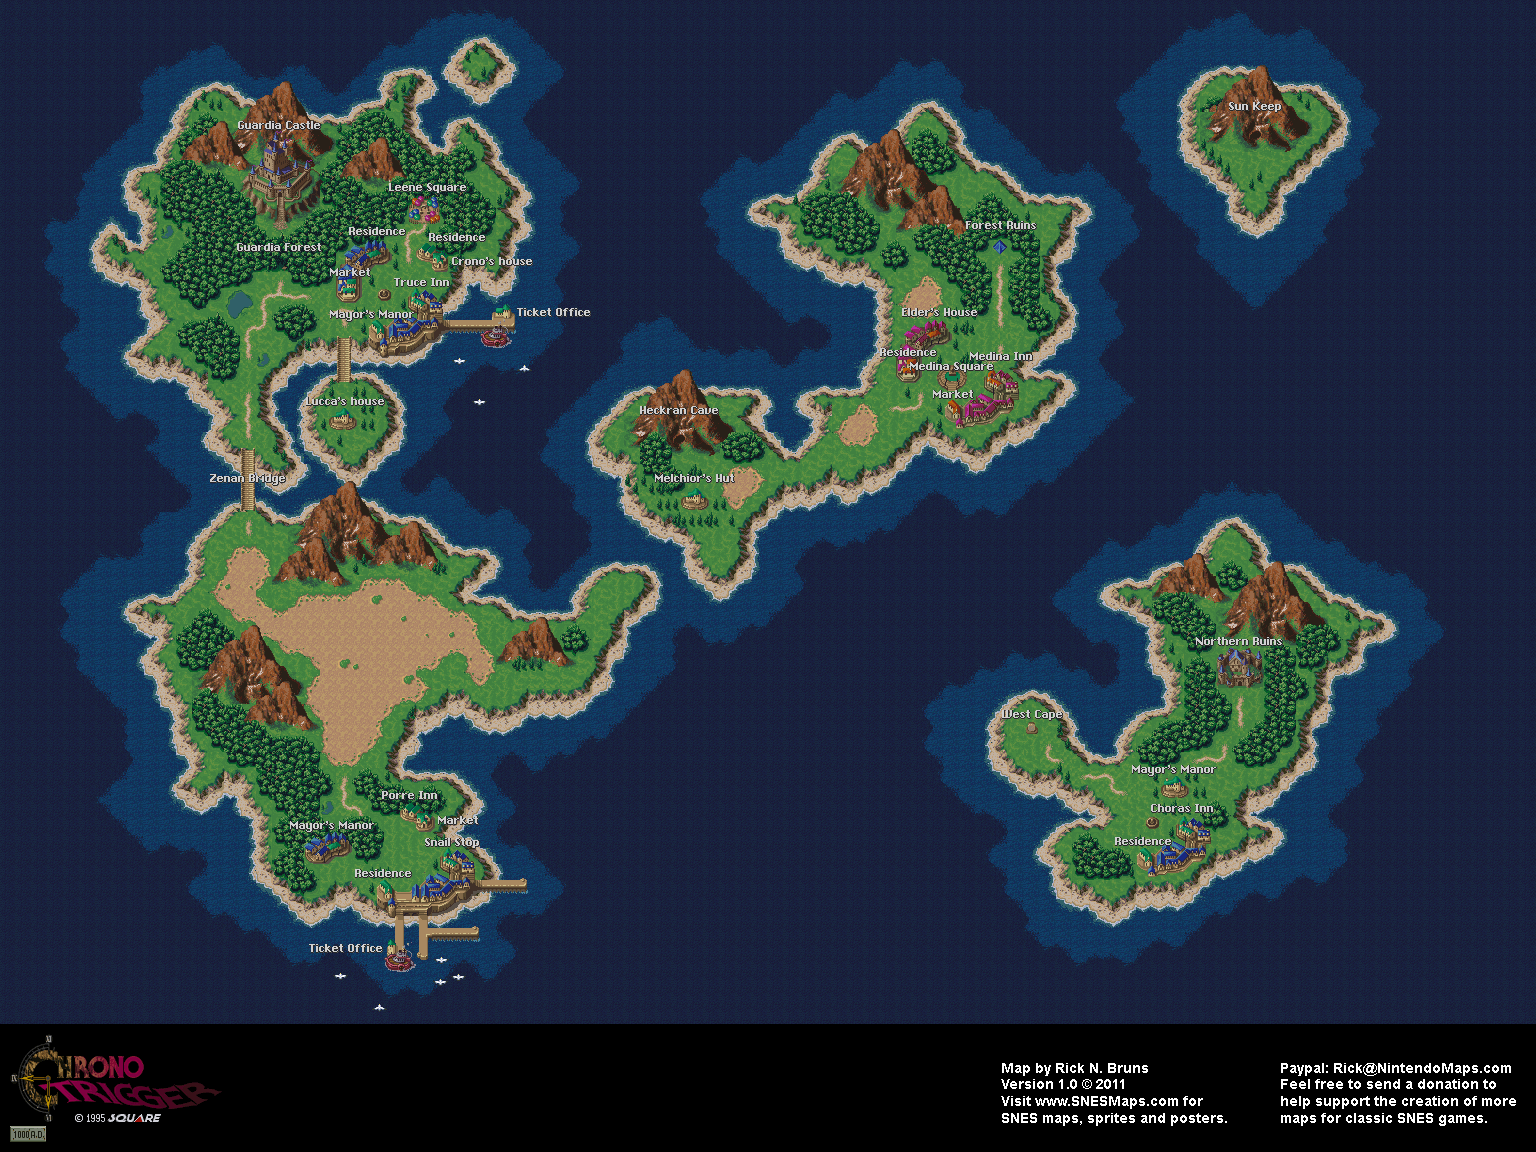 Chrono Trigger World Map Chrono Trigger   Present (1000 AD) Overworld Super Nintendo SNES Map